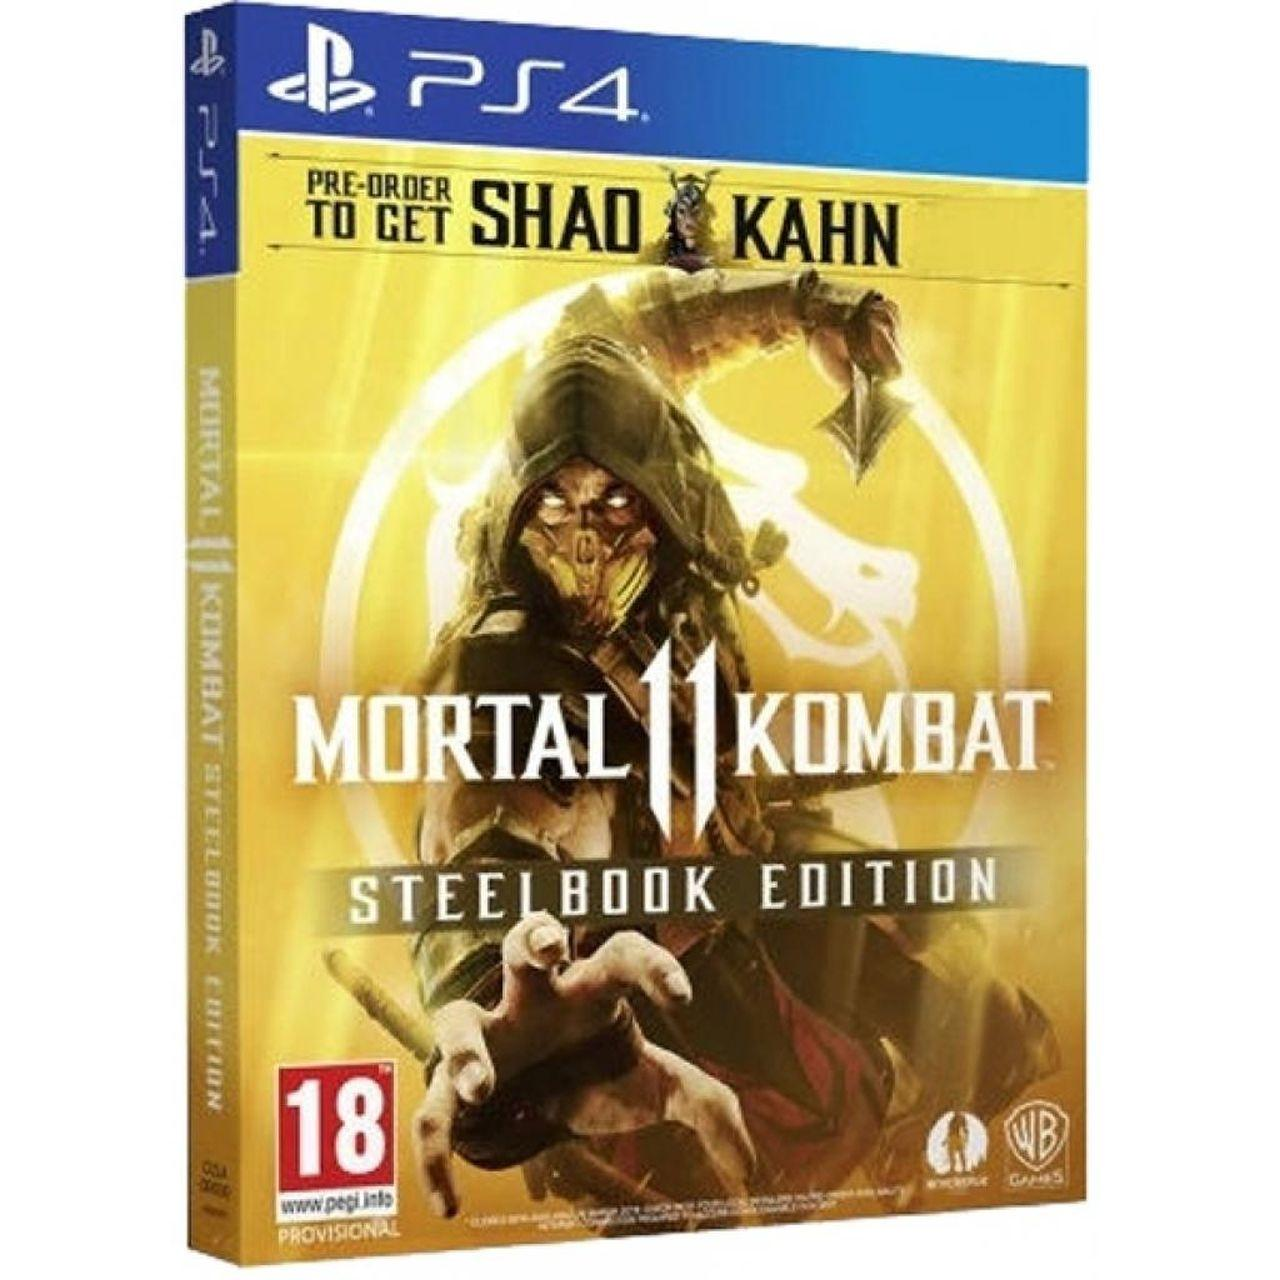 Mortal Kombat 11 Stealbook Edition SUB PS4 (NEW)